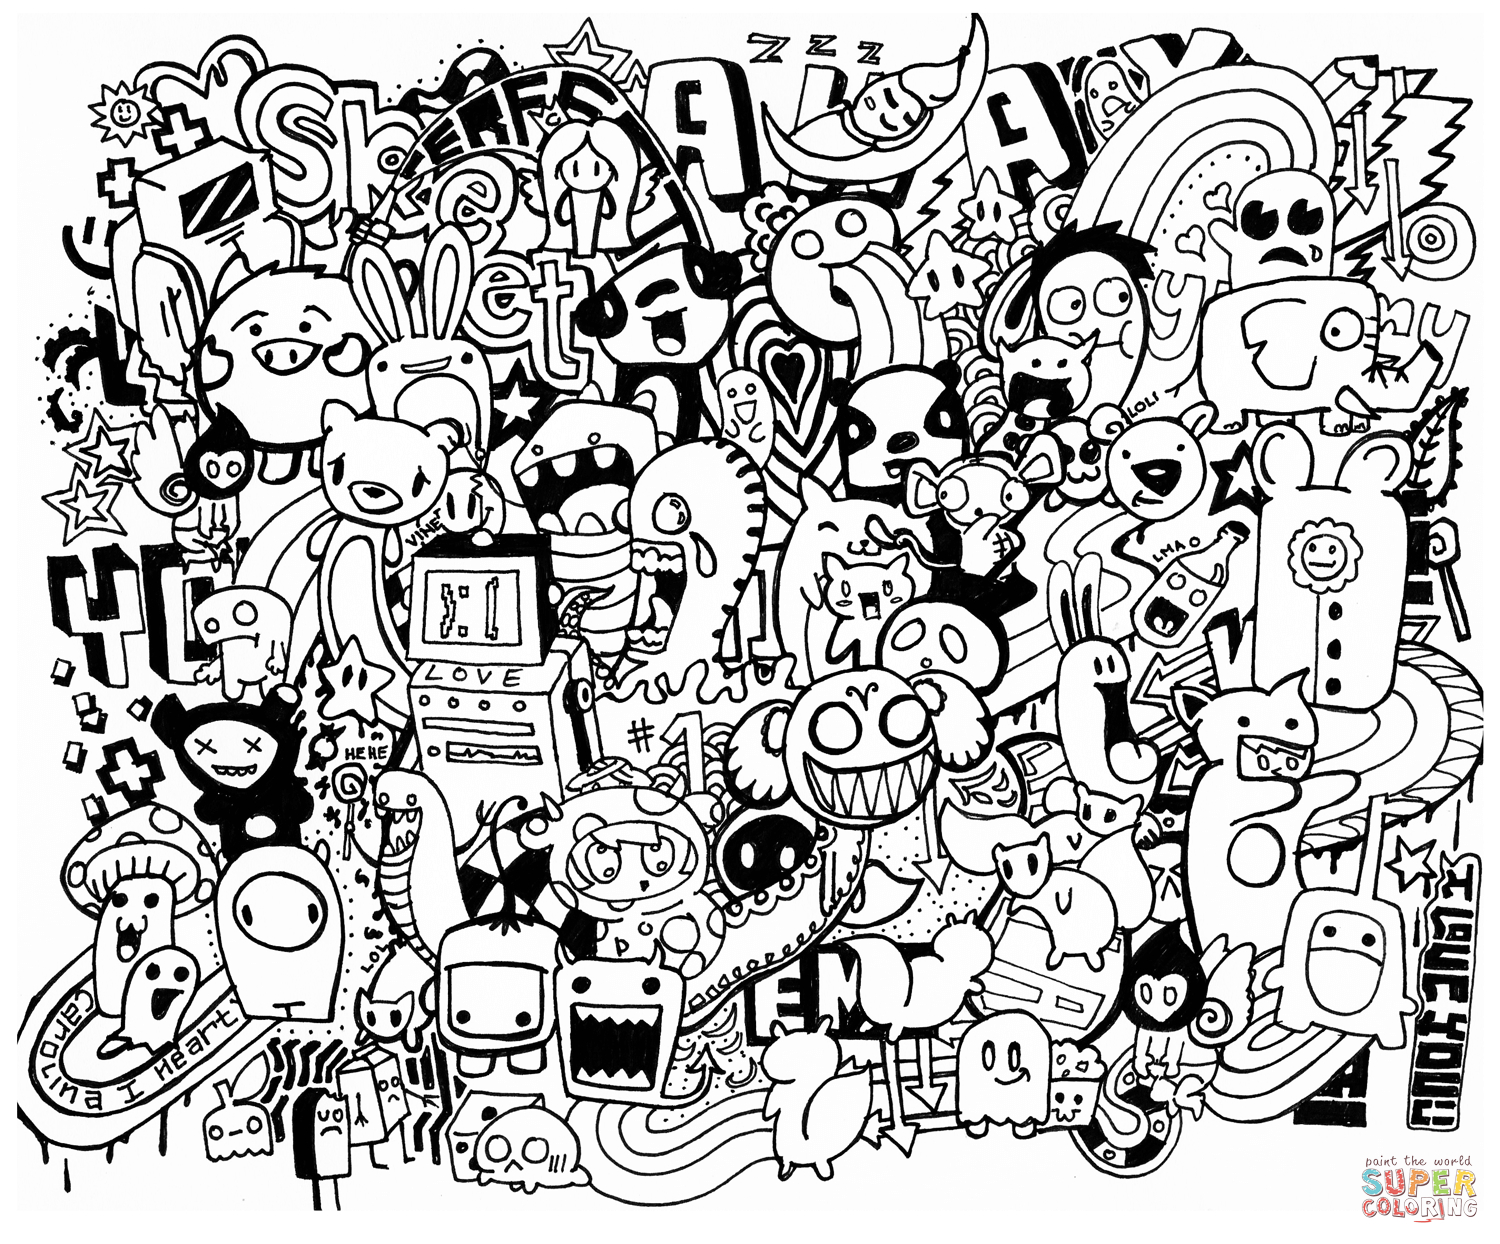 Doodle Mash Up Coloring Page   Free Printable Coloring Pages - Free Printable Doodle Art Coloring Pages